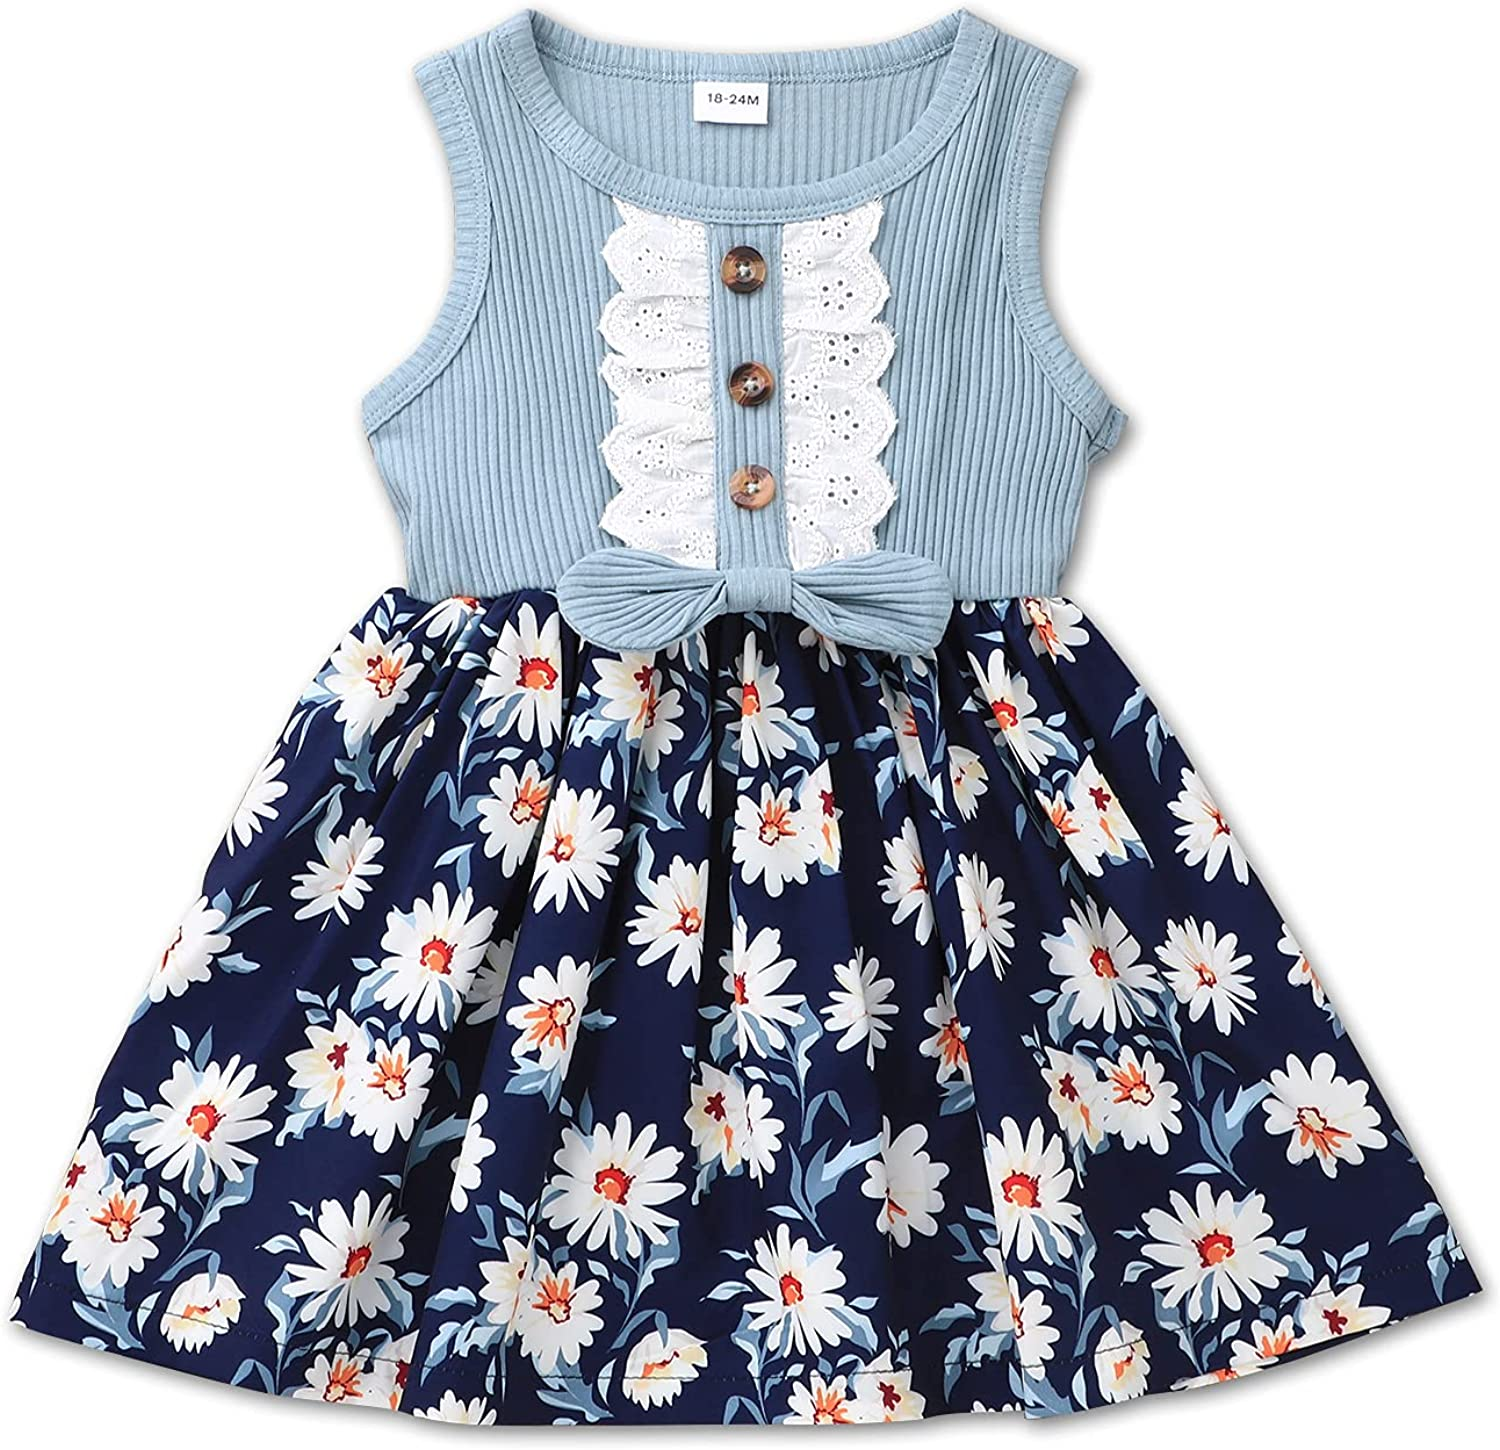 Limuvany Summer Baby Girl Dress Toddler Max 81% OFF Floral Sleeveless Print High quality